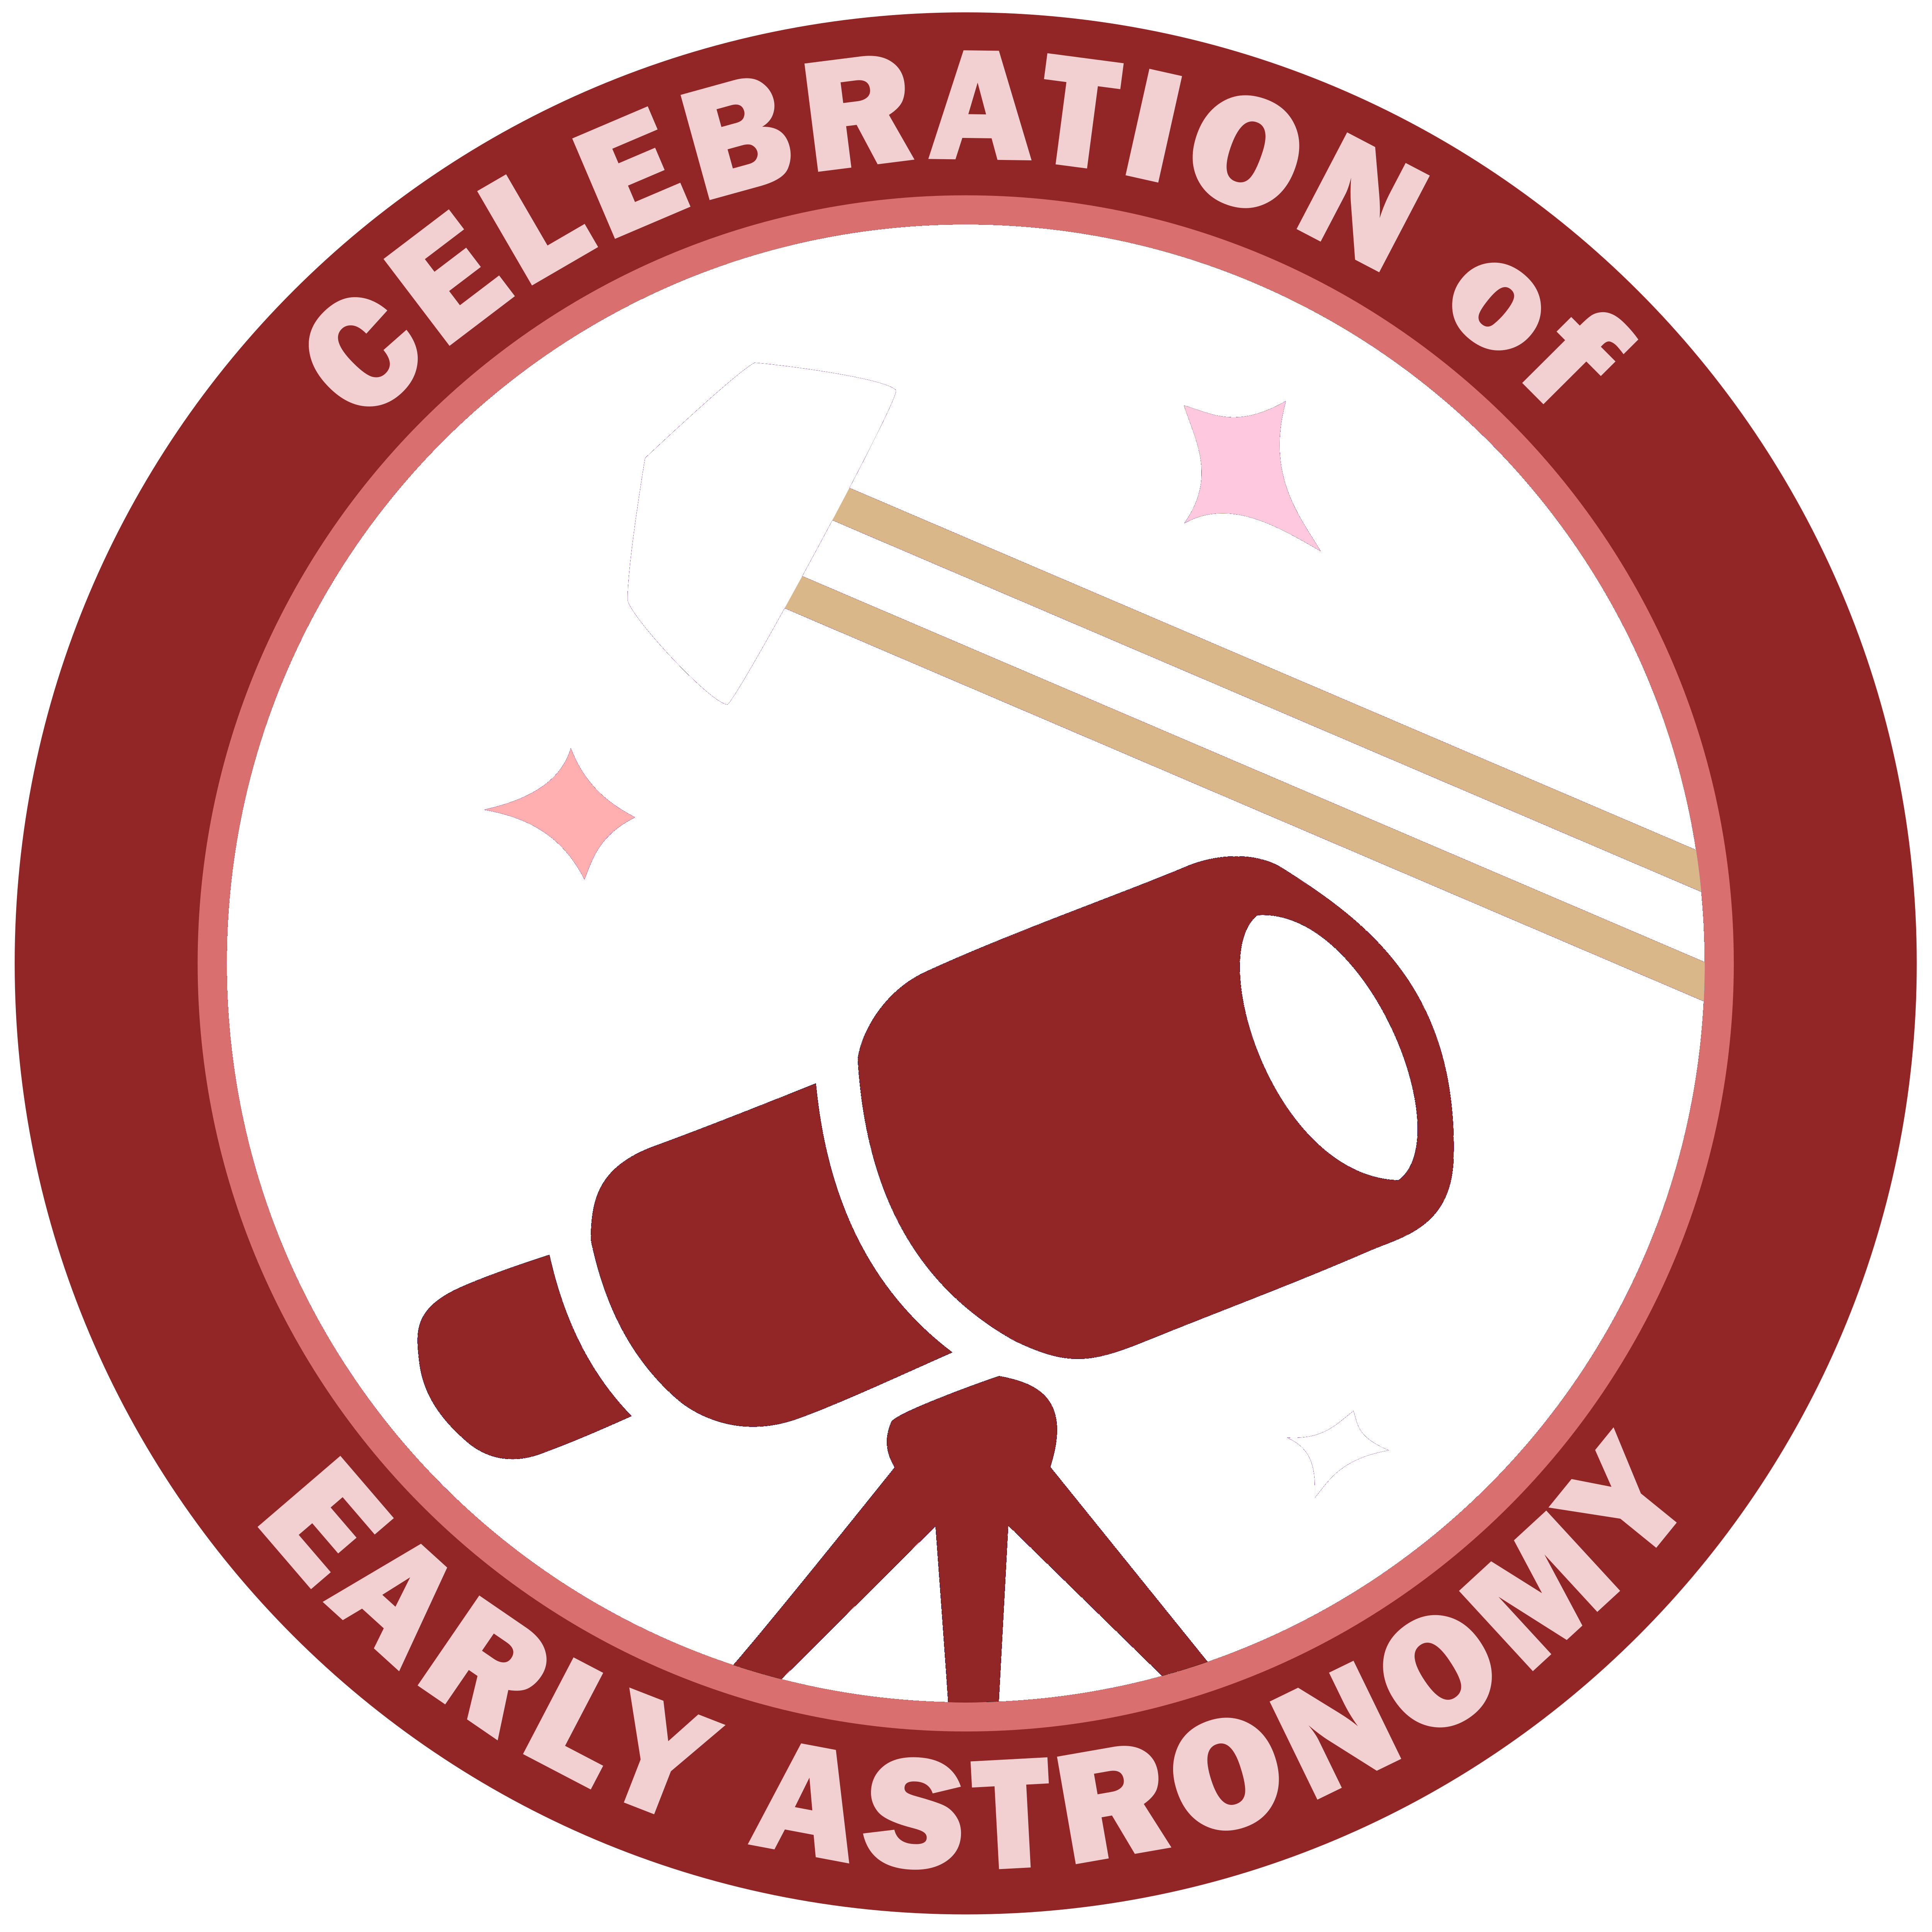 Celebration of Early Astronomy